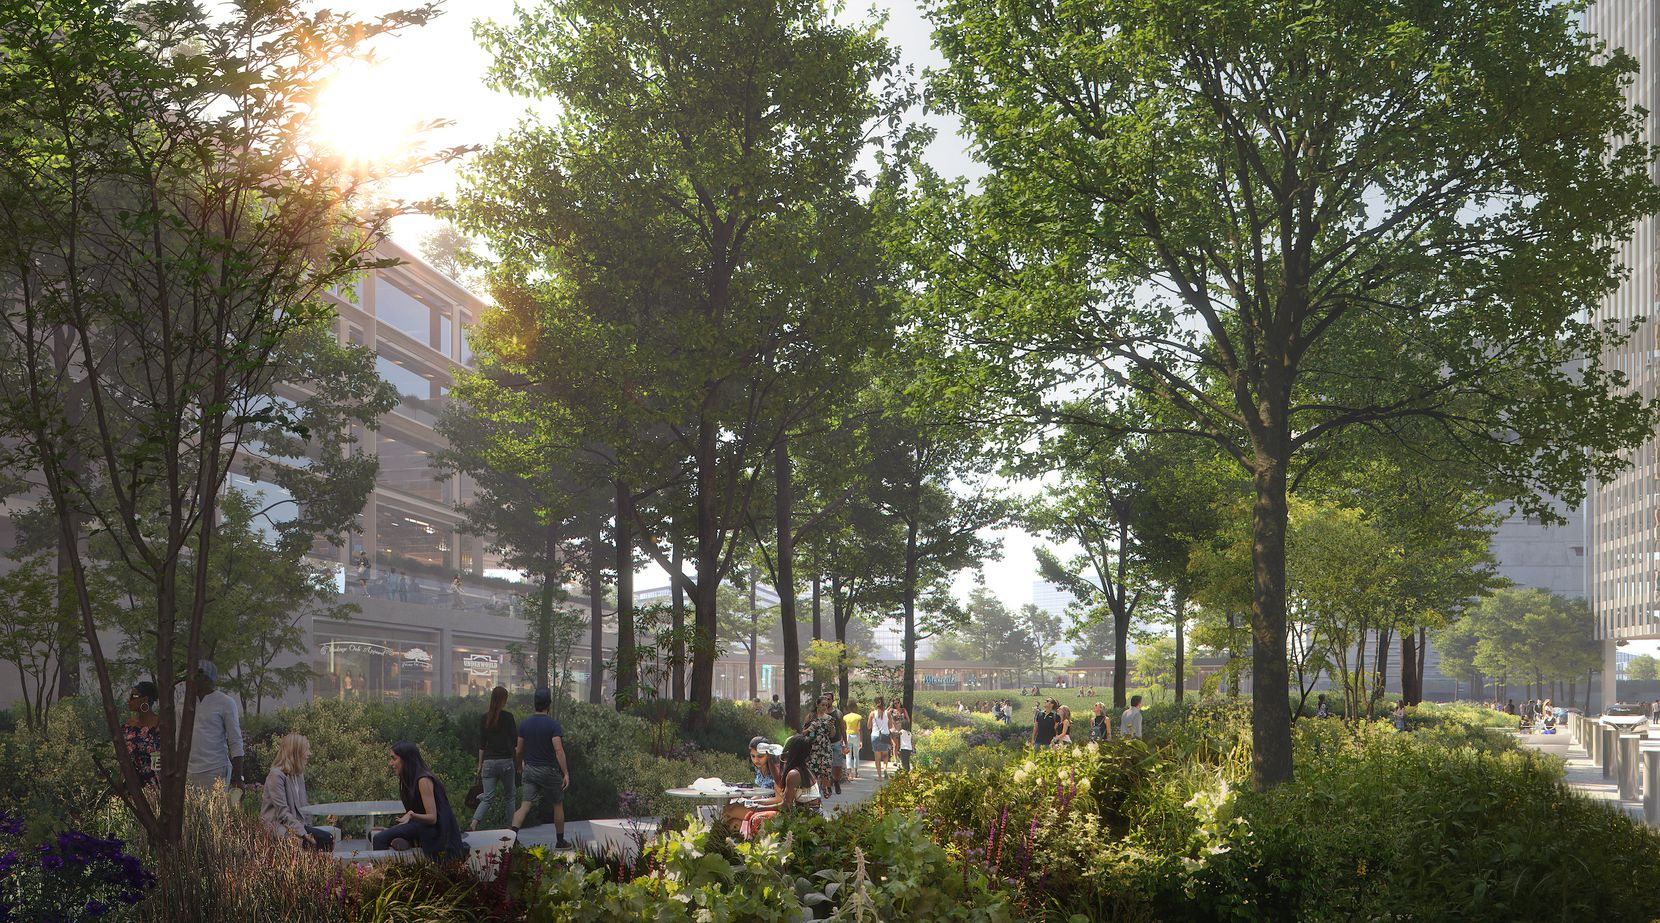 Developers describe the planned park as an urban arboretum.